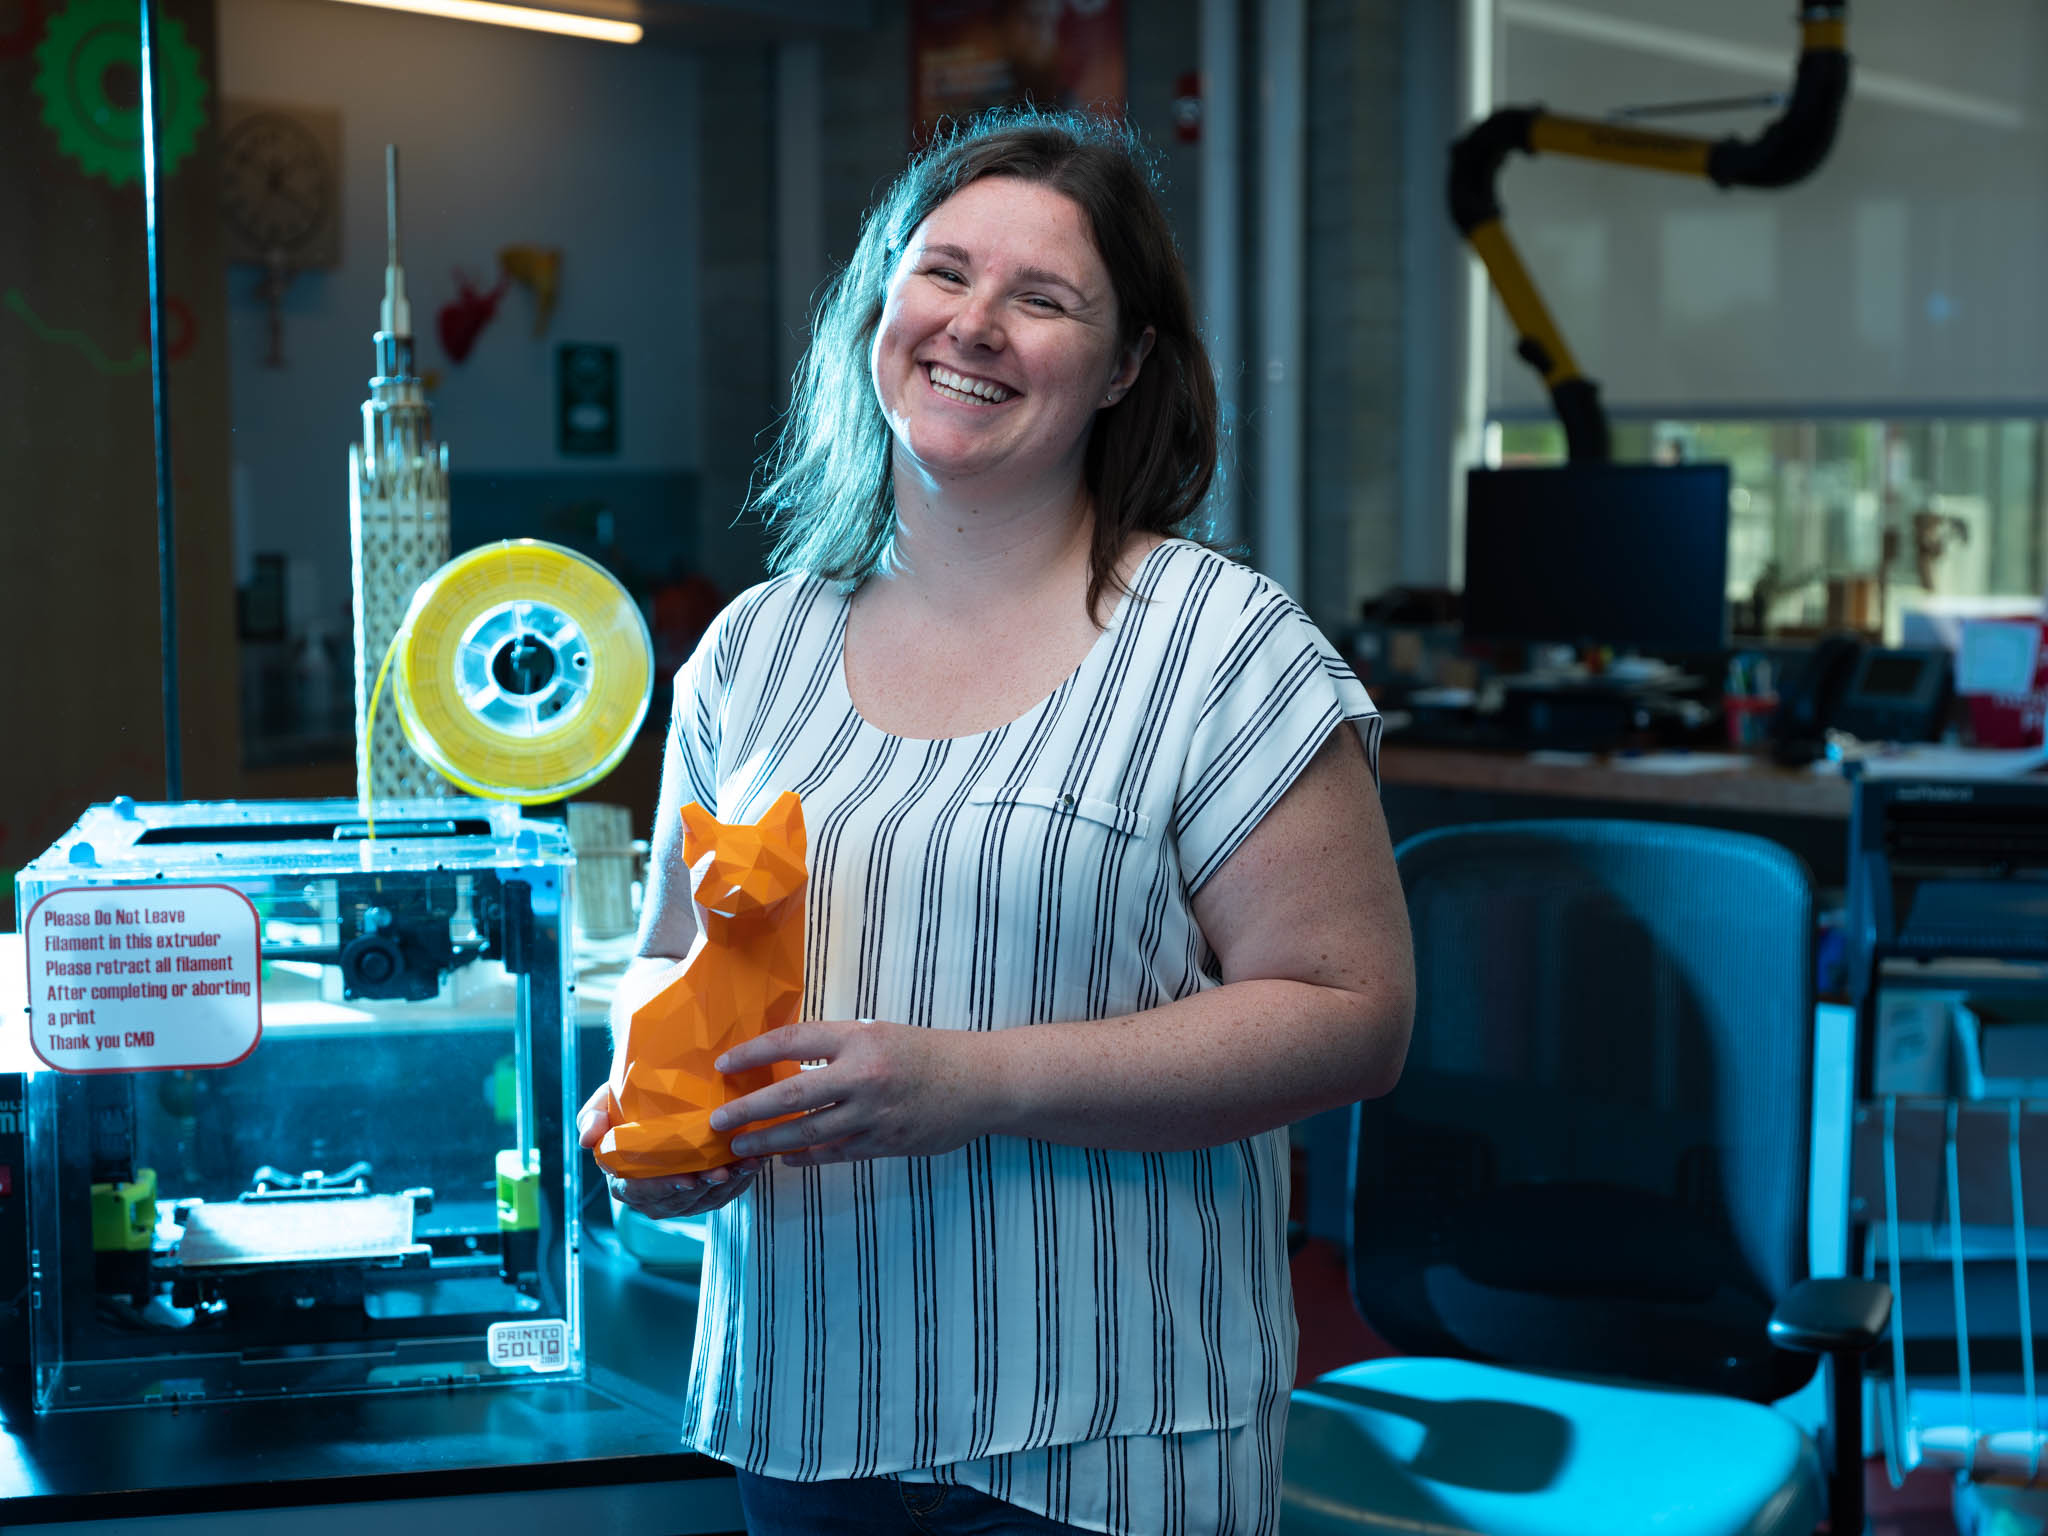 Businesses are free to use the 3d printer, laser cutter, and many other innovative tools at the Innisfil ideaLAB & Library